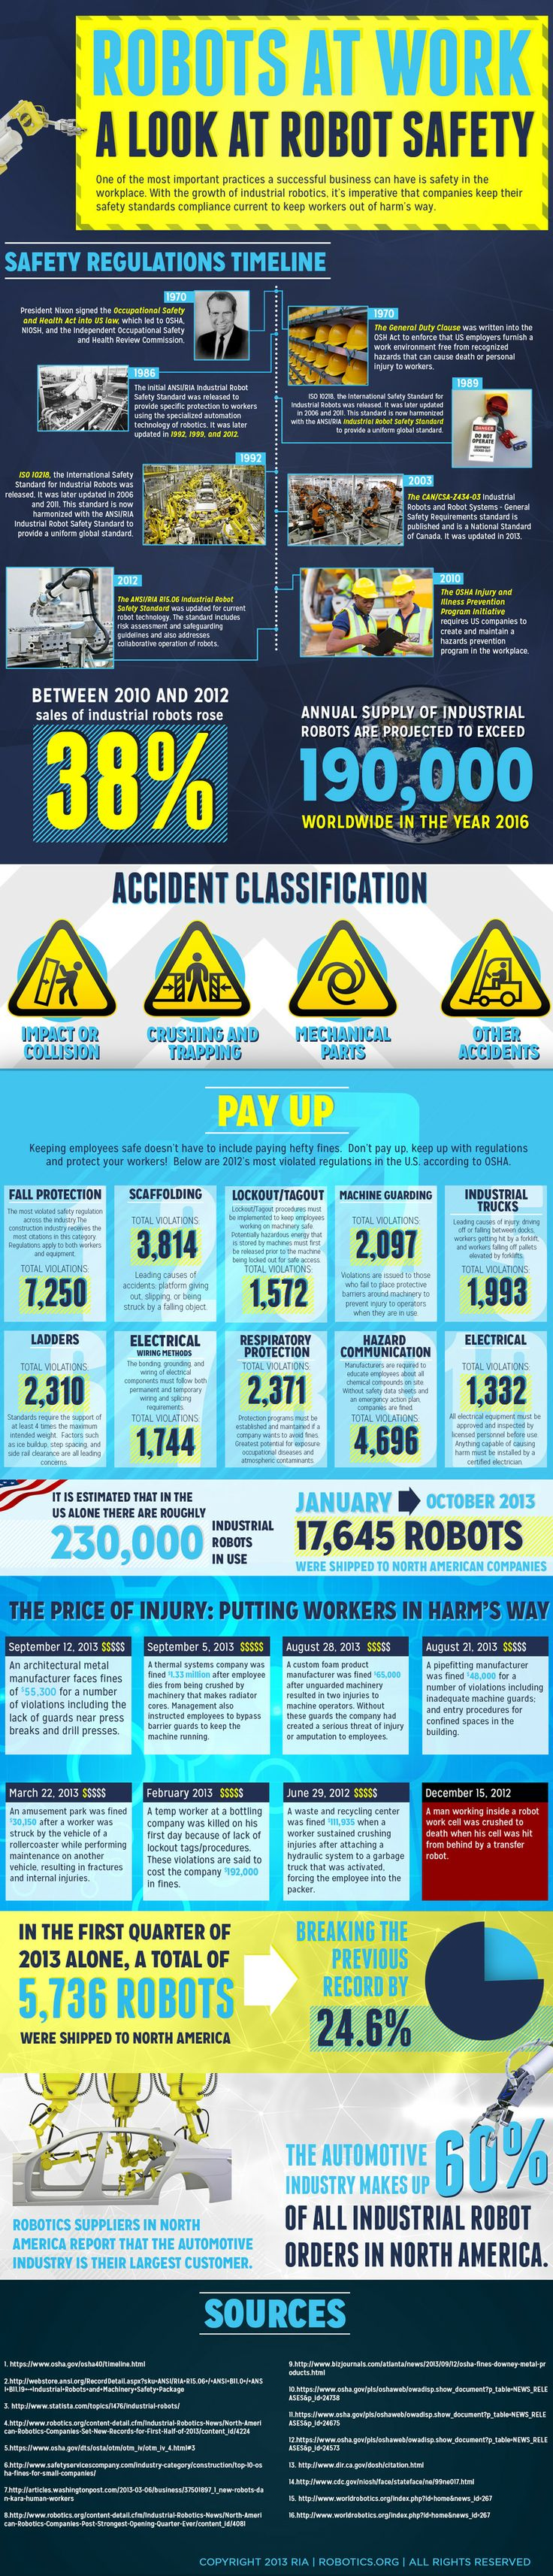 Robots At Work: A Look At Robotic Safety   #Infographic #Robots #Safety